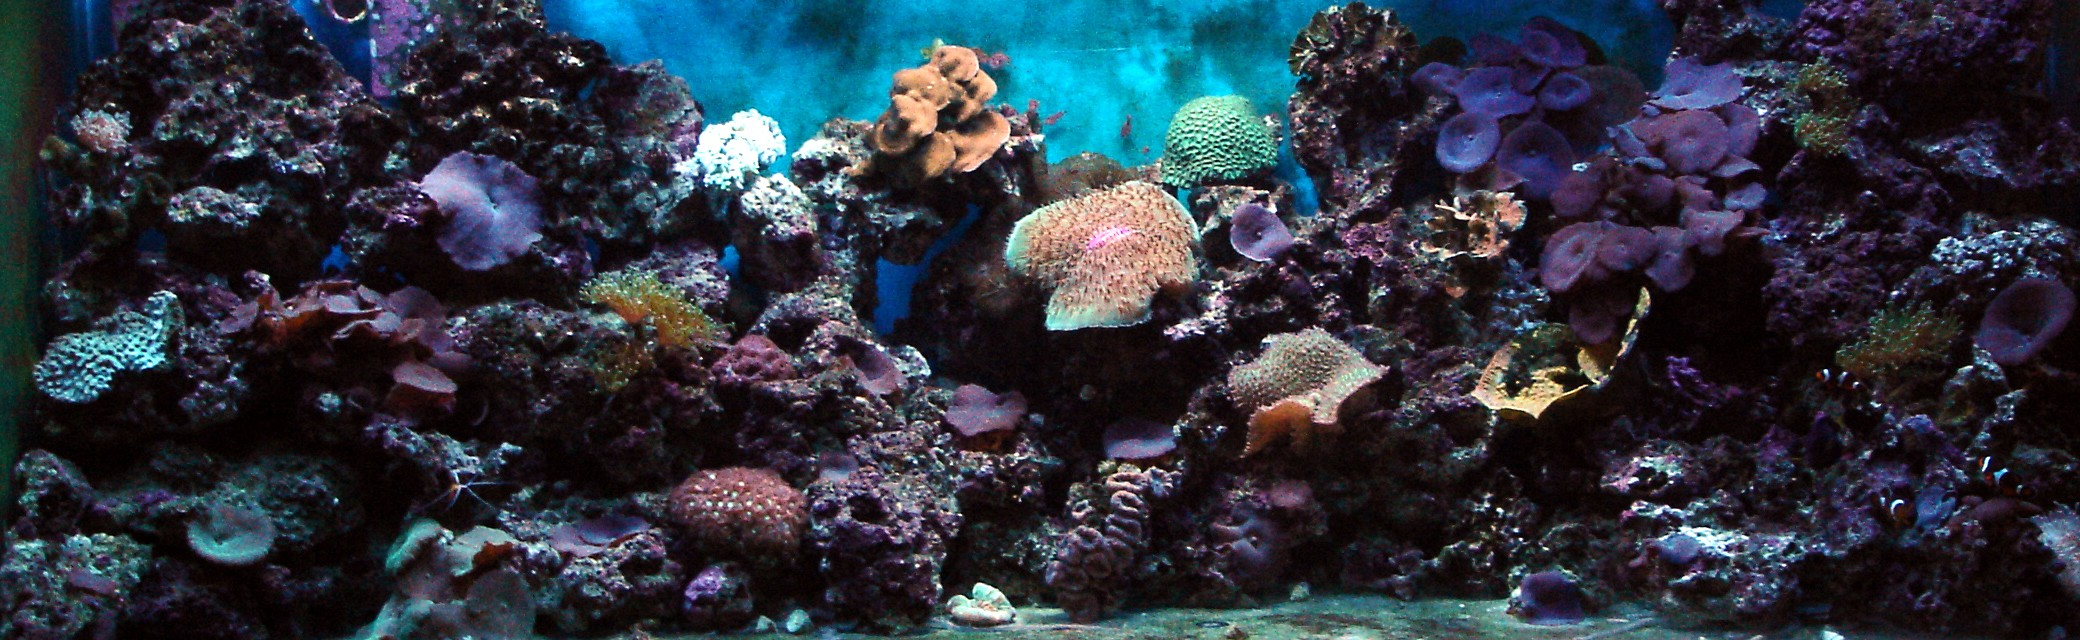 Coral reef animals lionfish wallpaper coral fish wallpaper coral reef